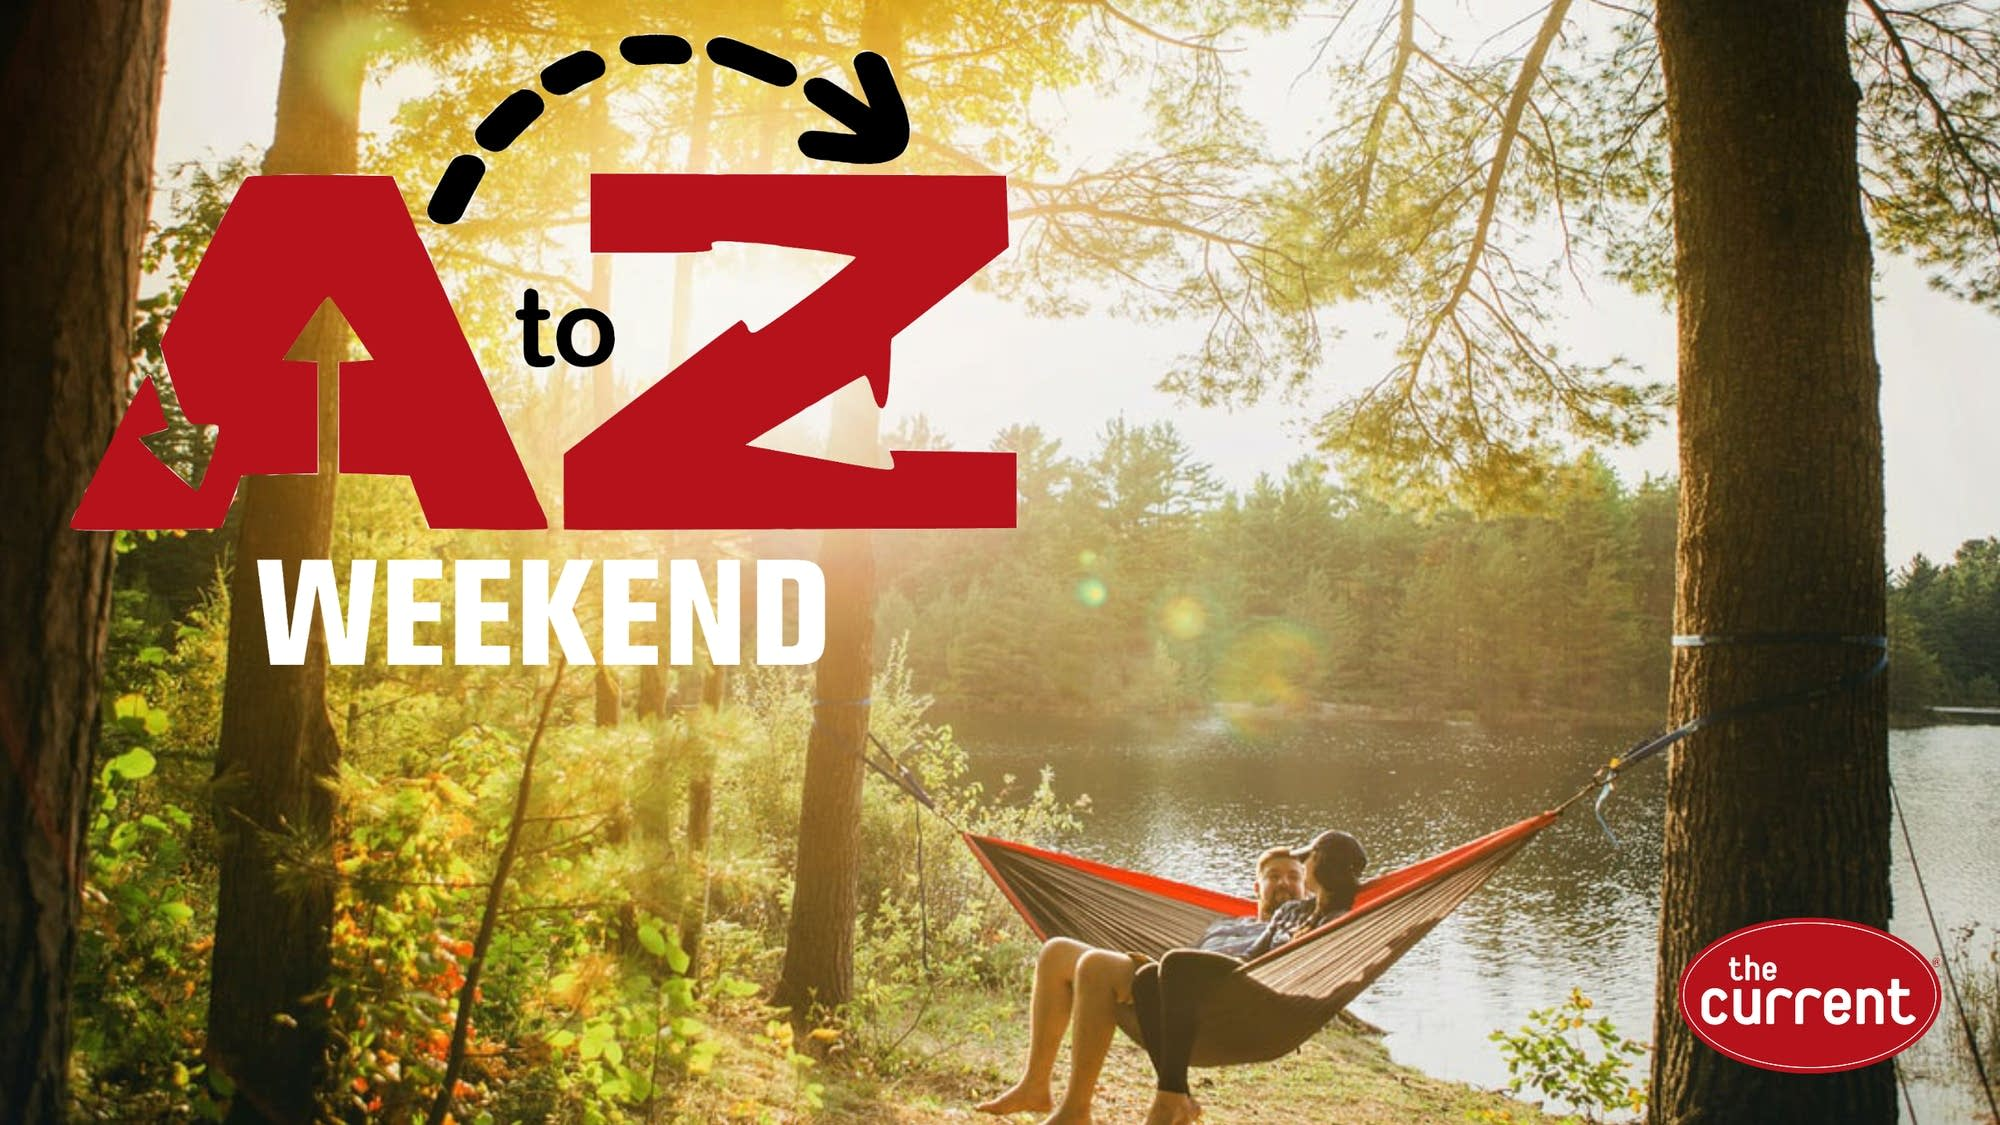 A to Z Weekend on The Current - wide